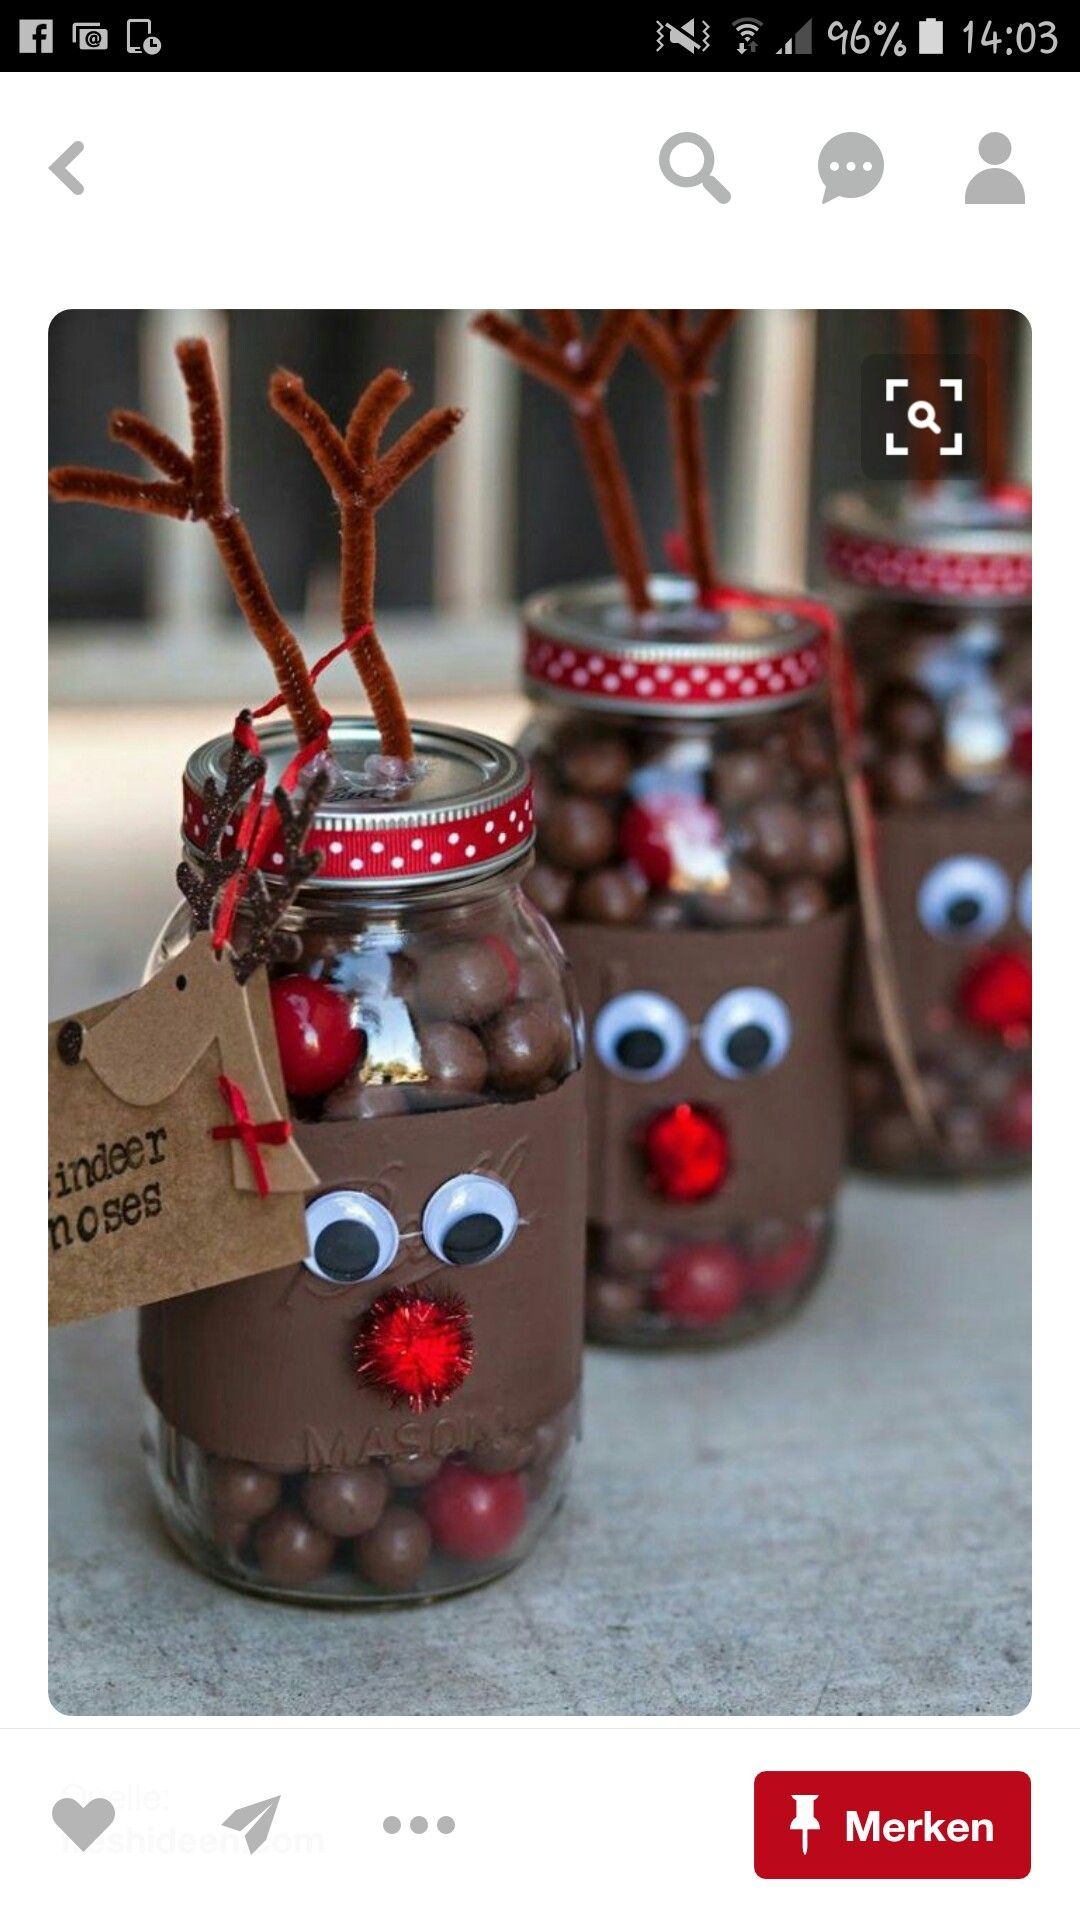 Make simple and handy homemade gifts with easily available materials. Craft  useful supplies for your dear ones as a DIY gift to cherish.